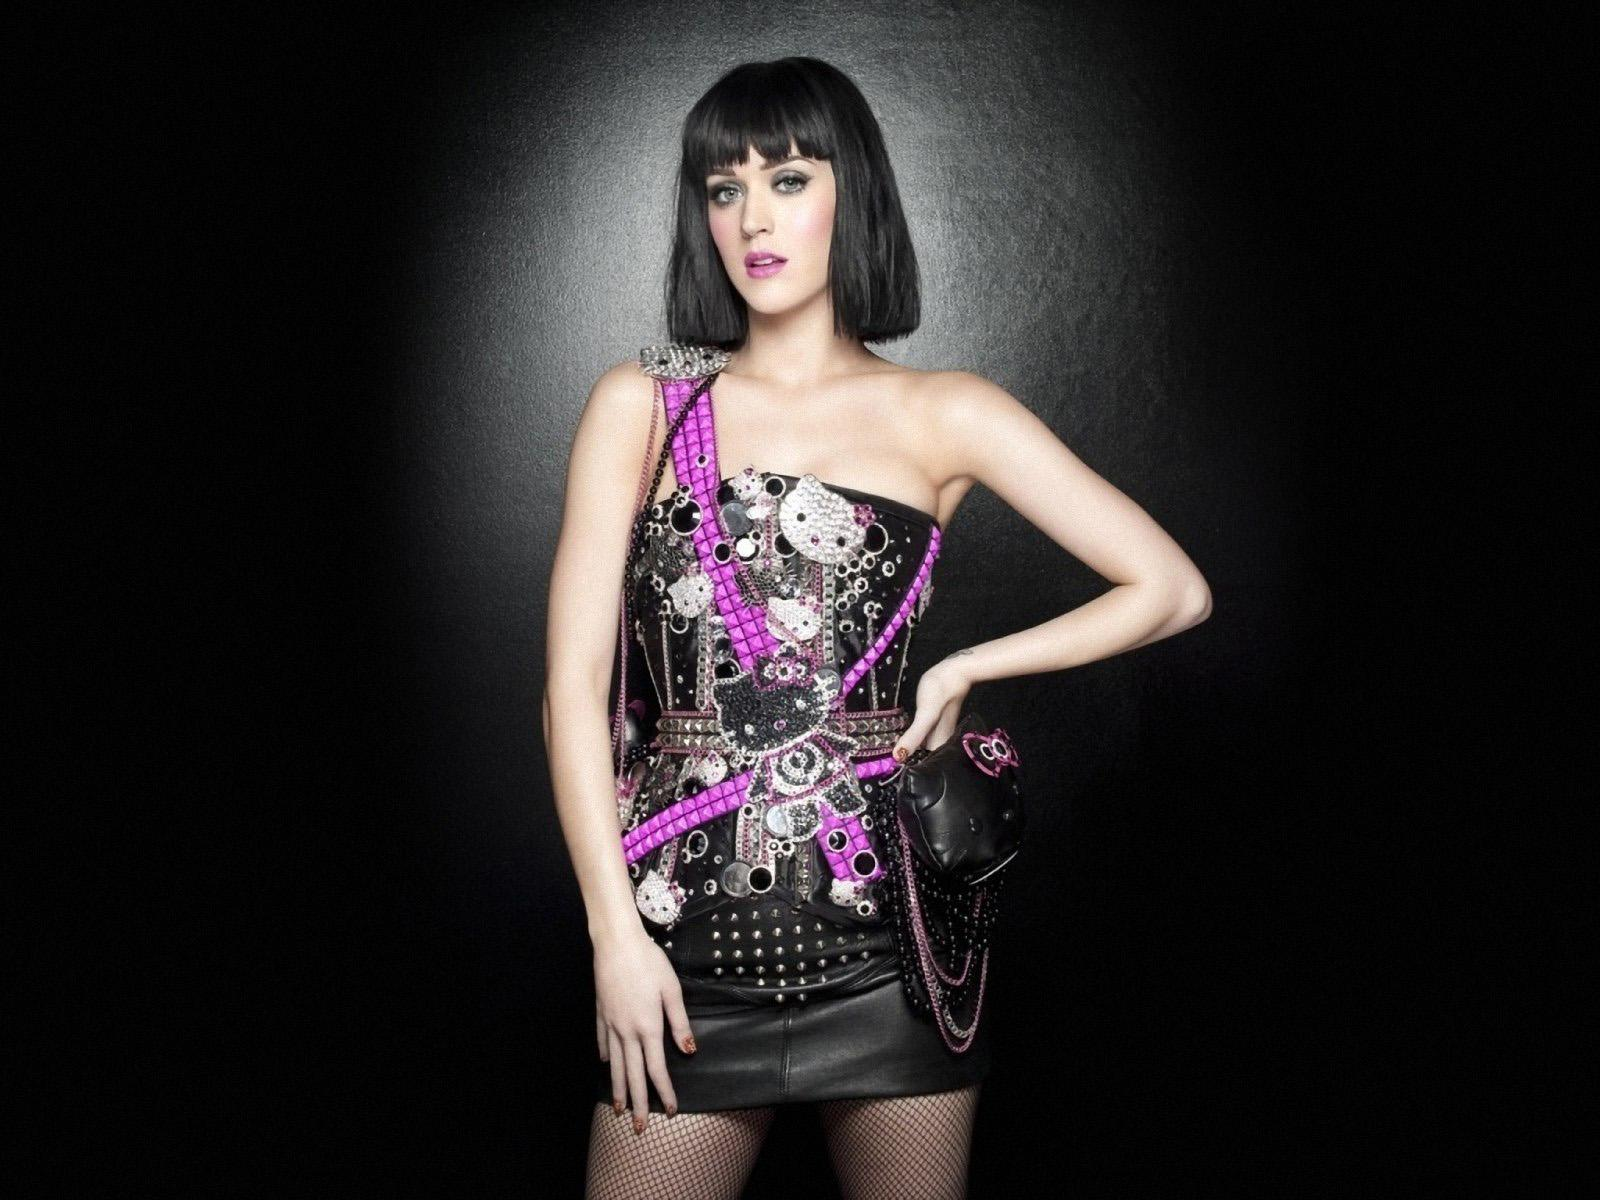 katy perry wallpapers hd | katy perry picture